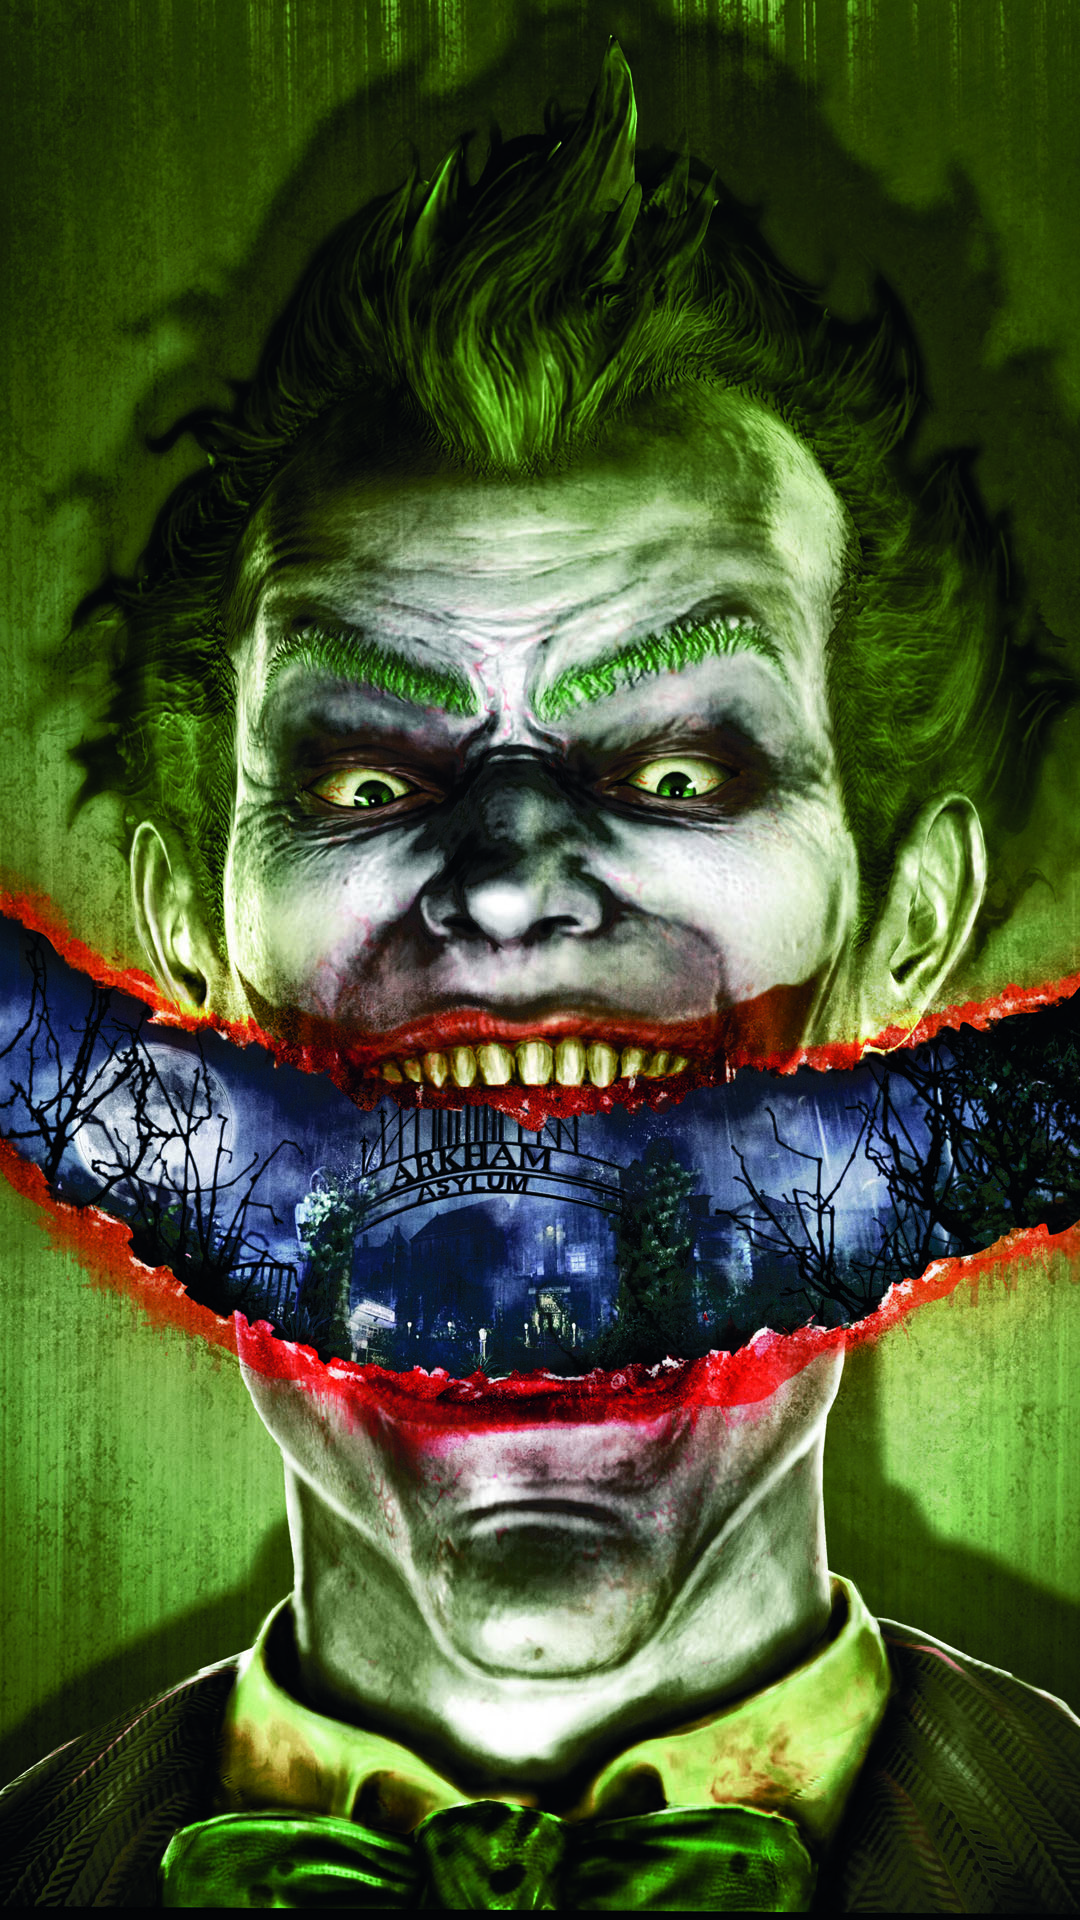 Joker smile - Best htc one wallpapers, free and easy to ...